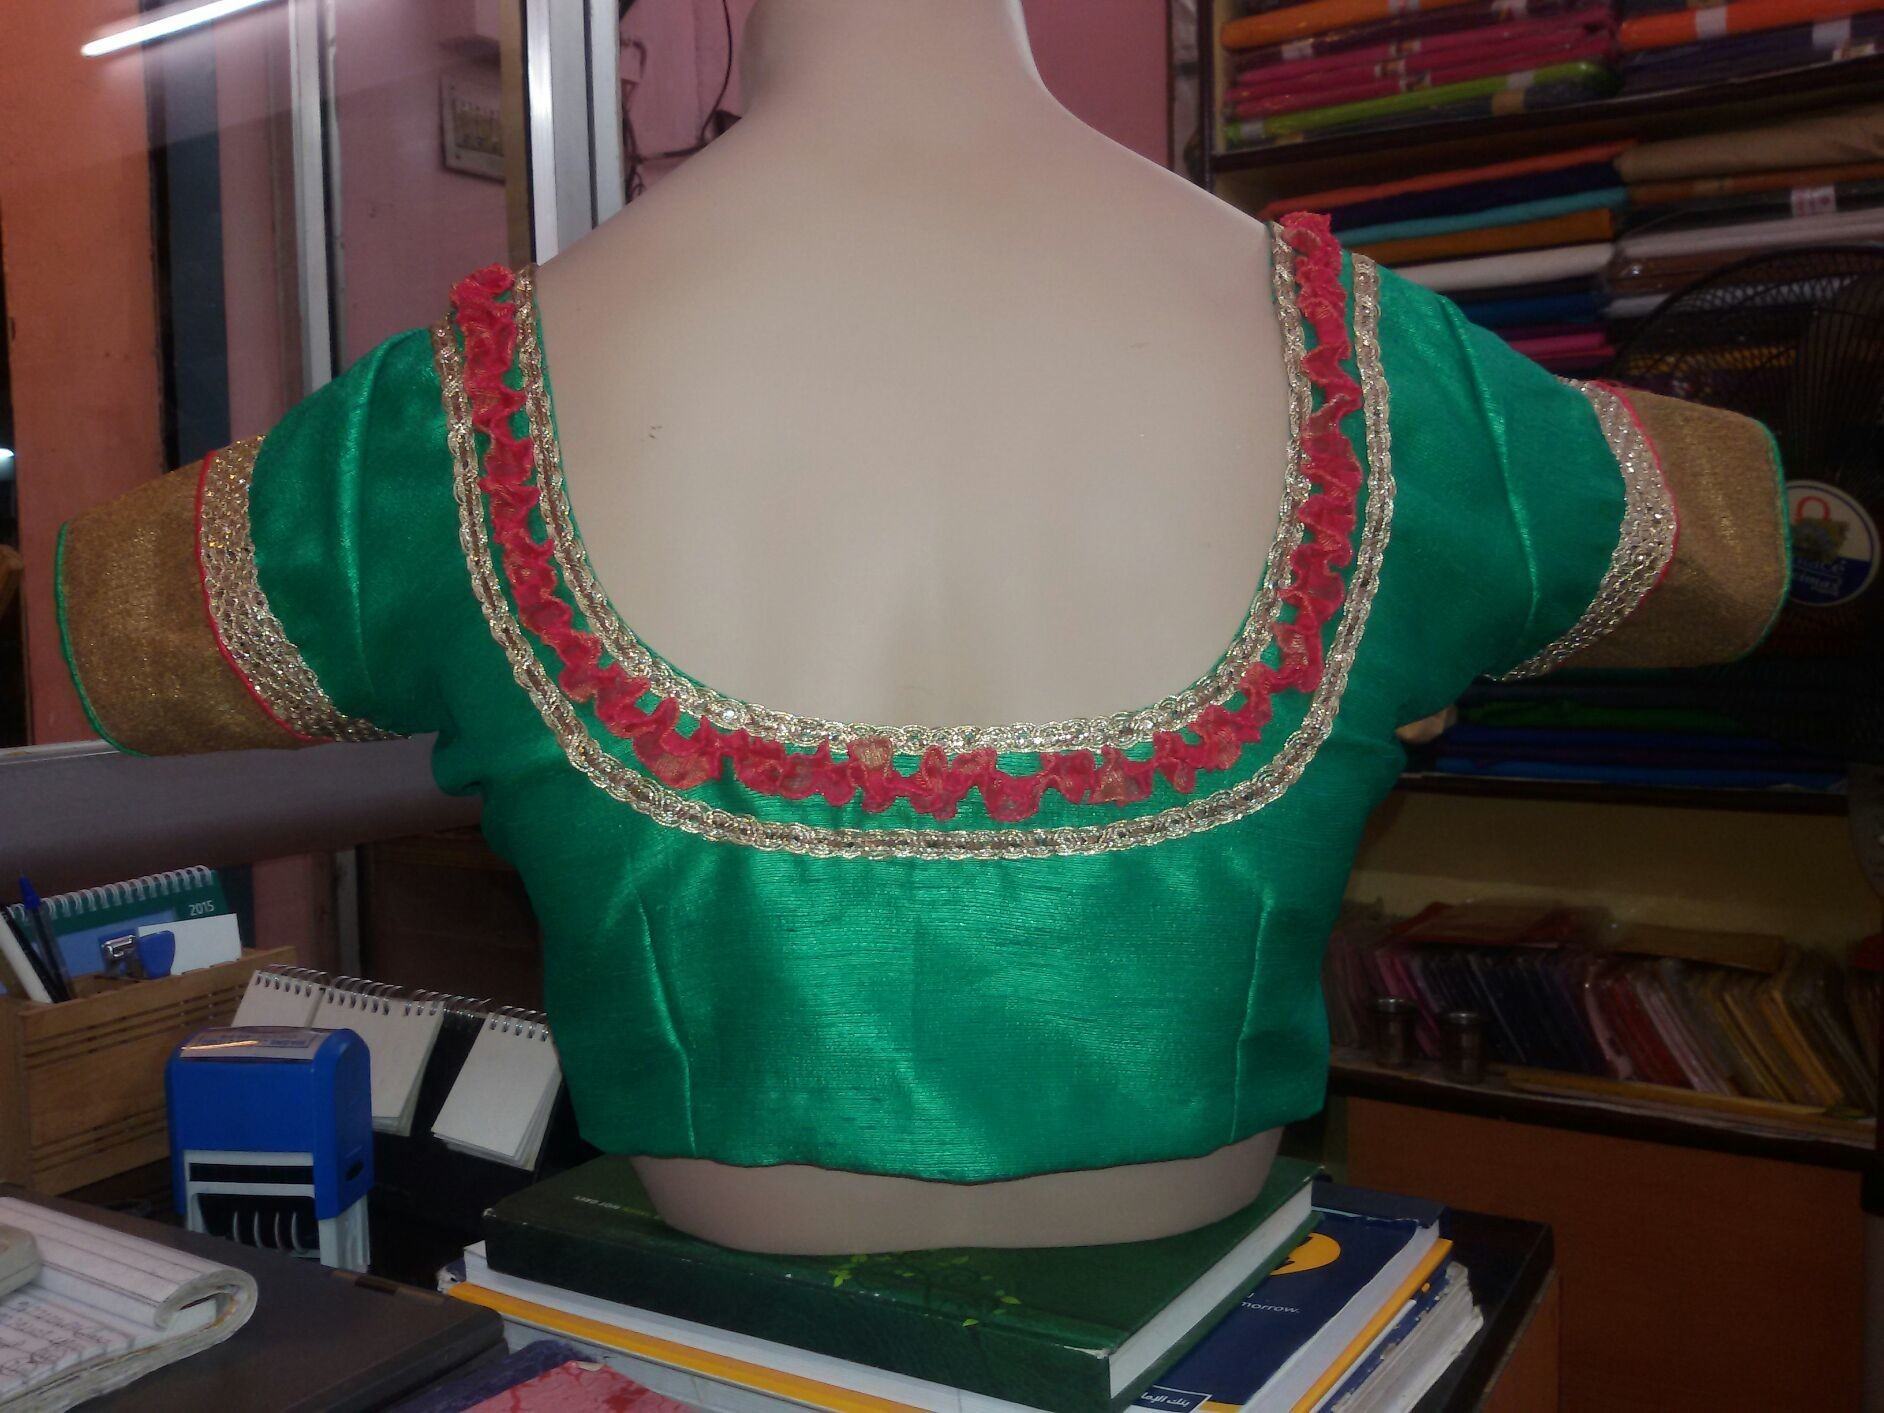 Another blouse pattern